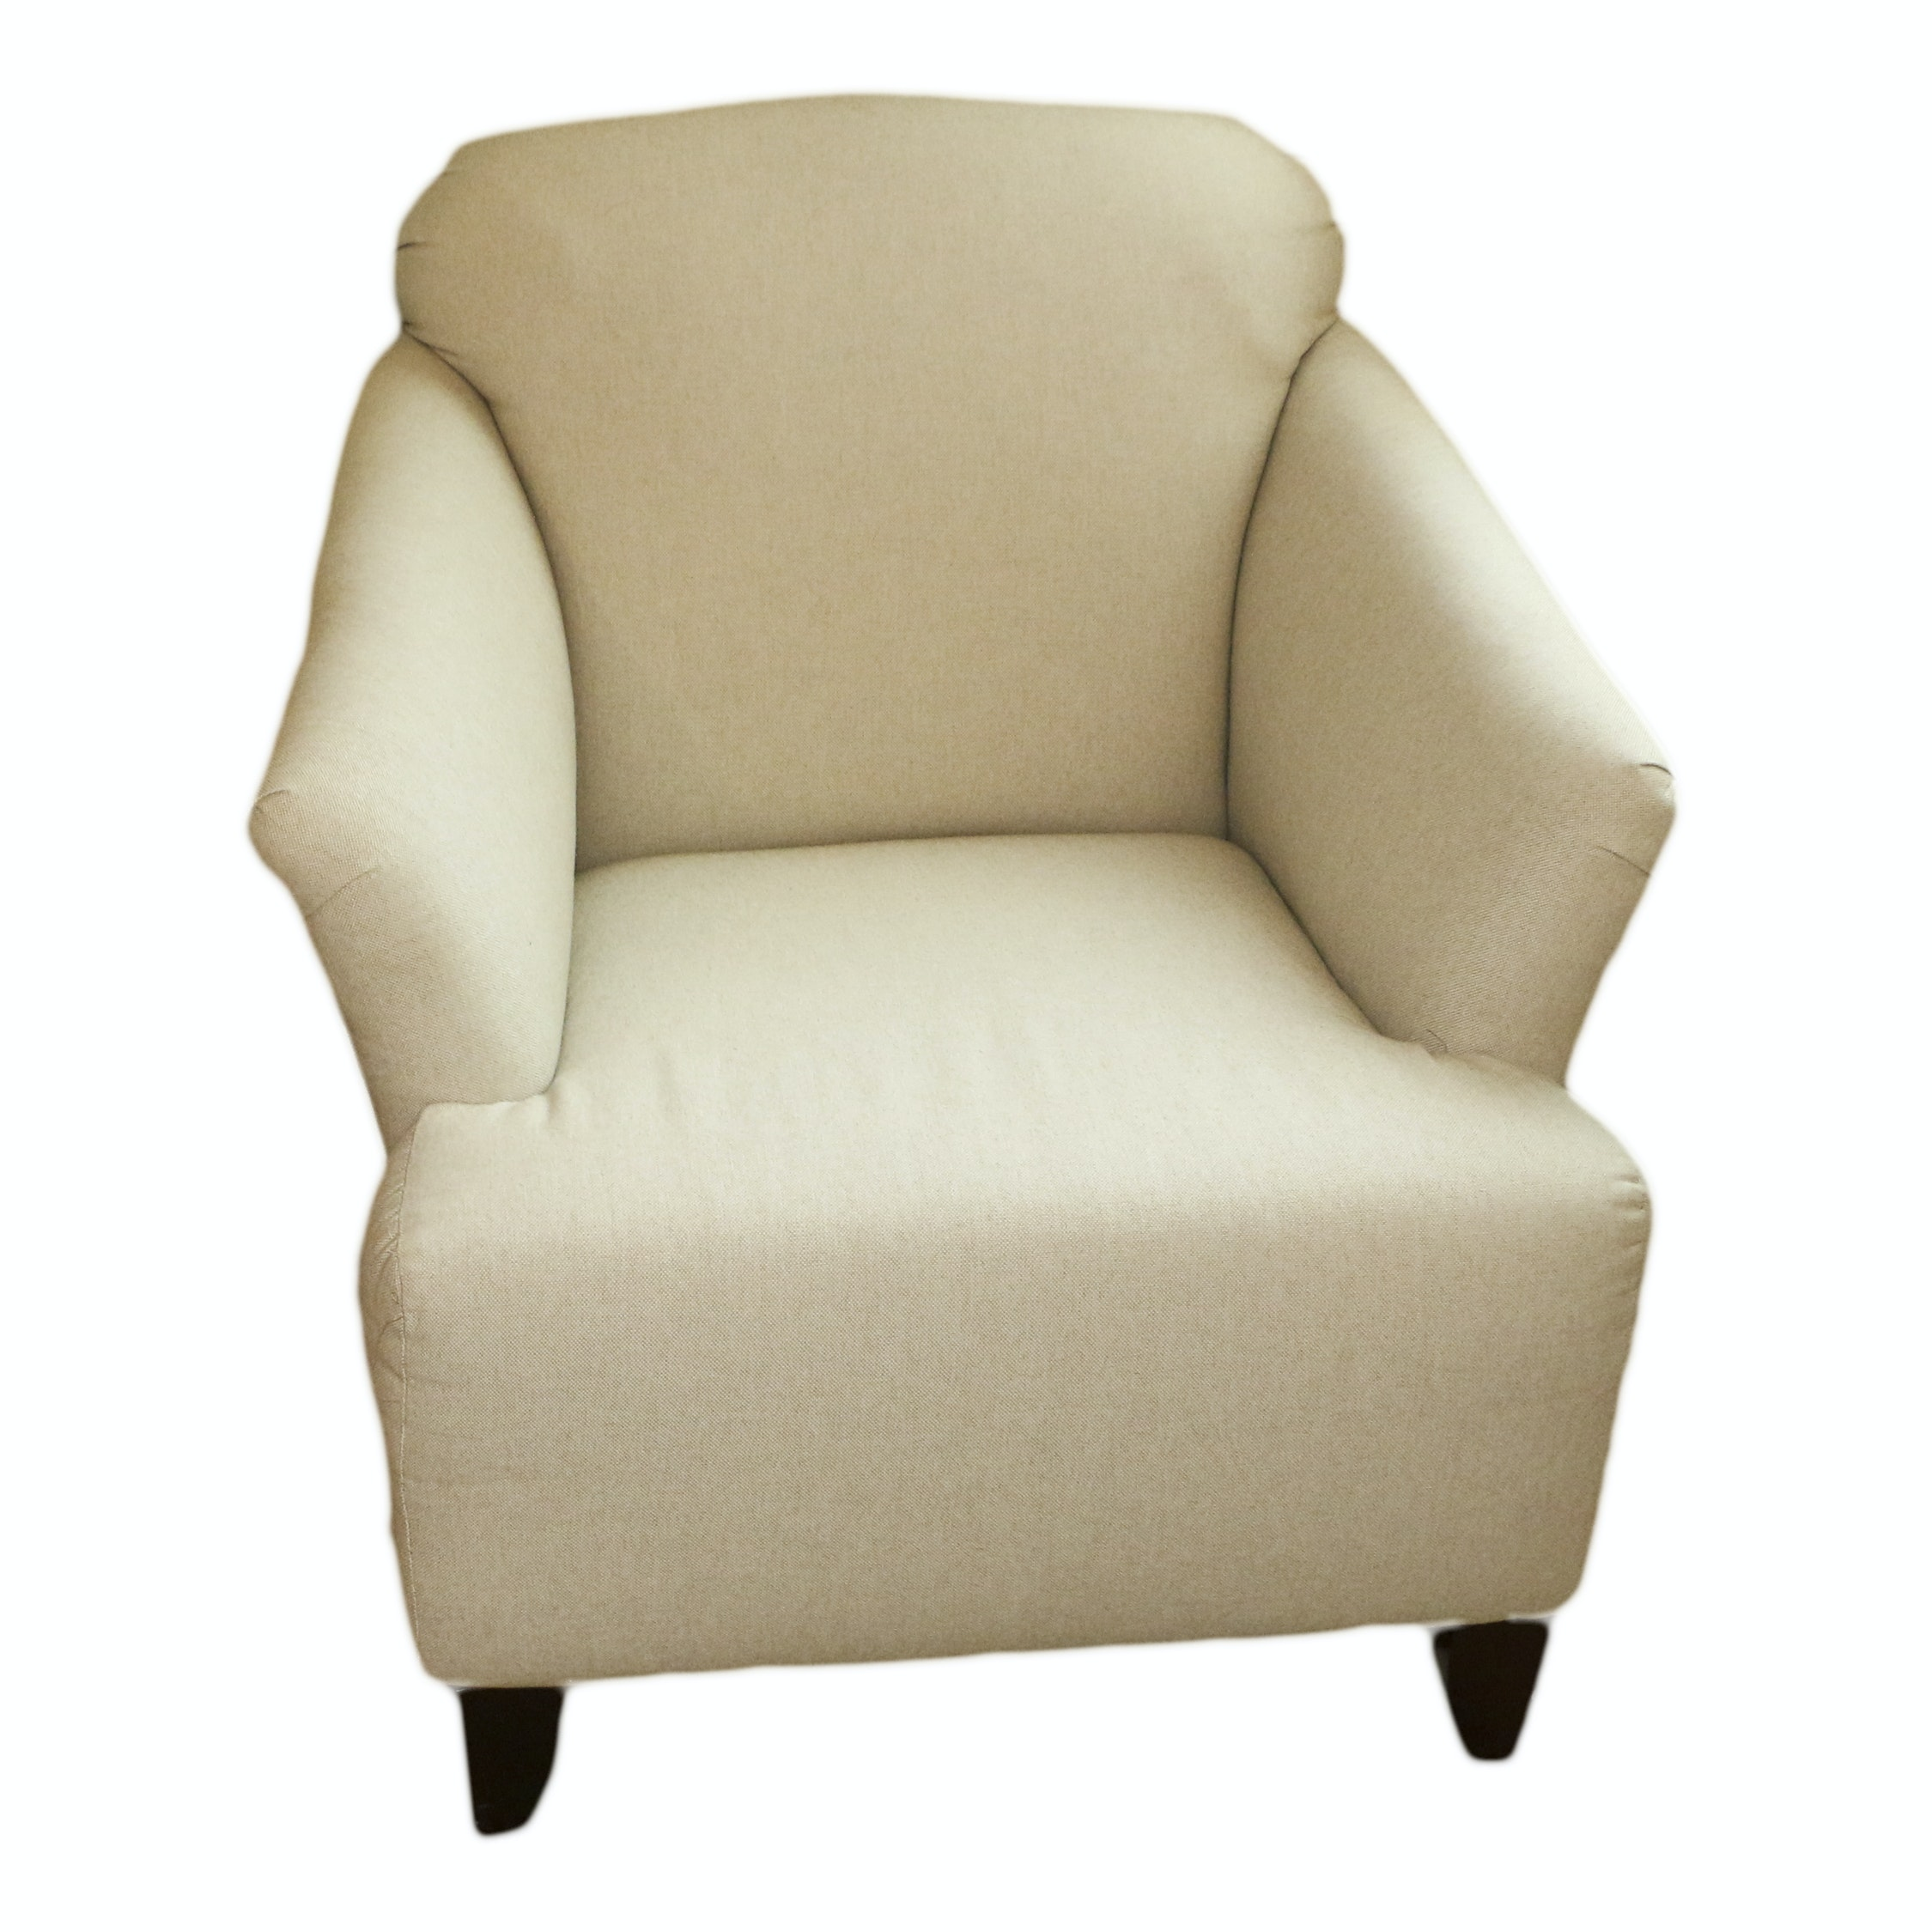 Upholstered Armchair, 21st Century